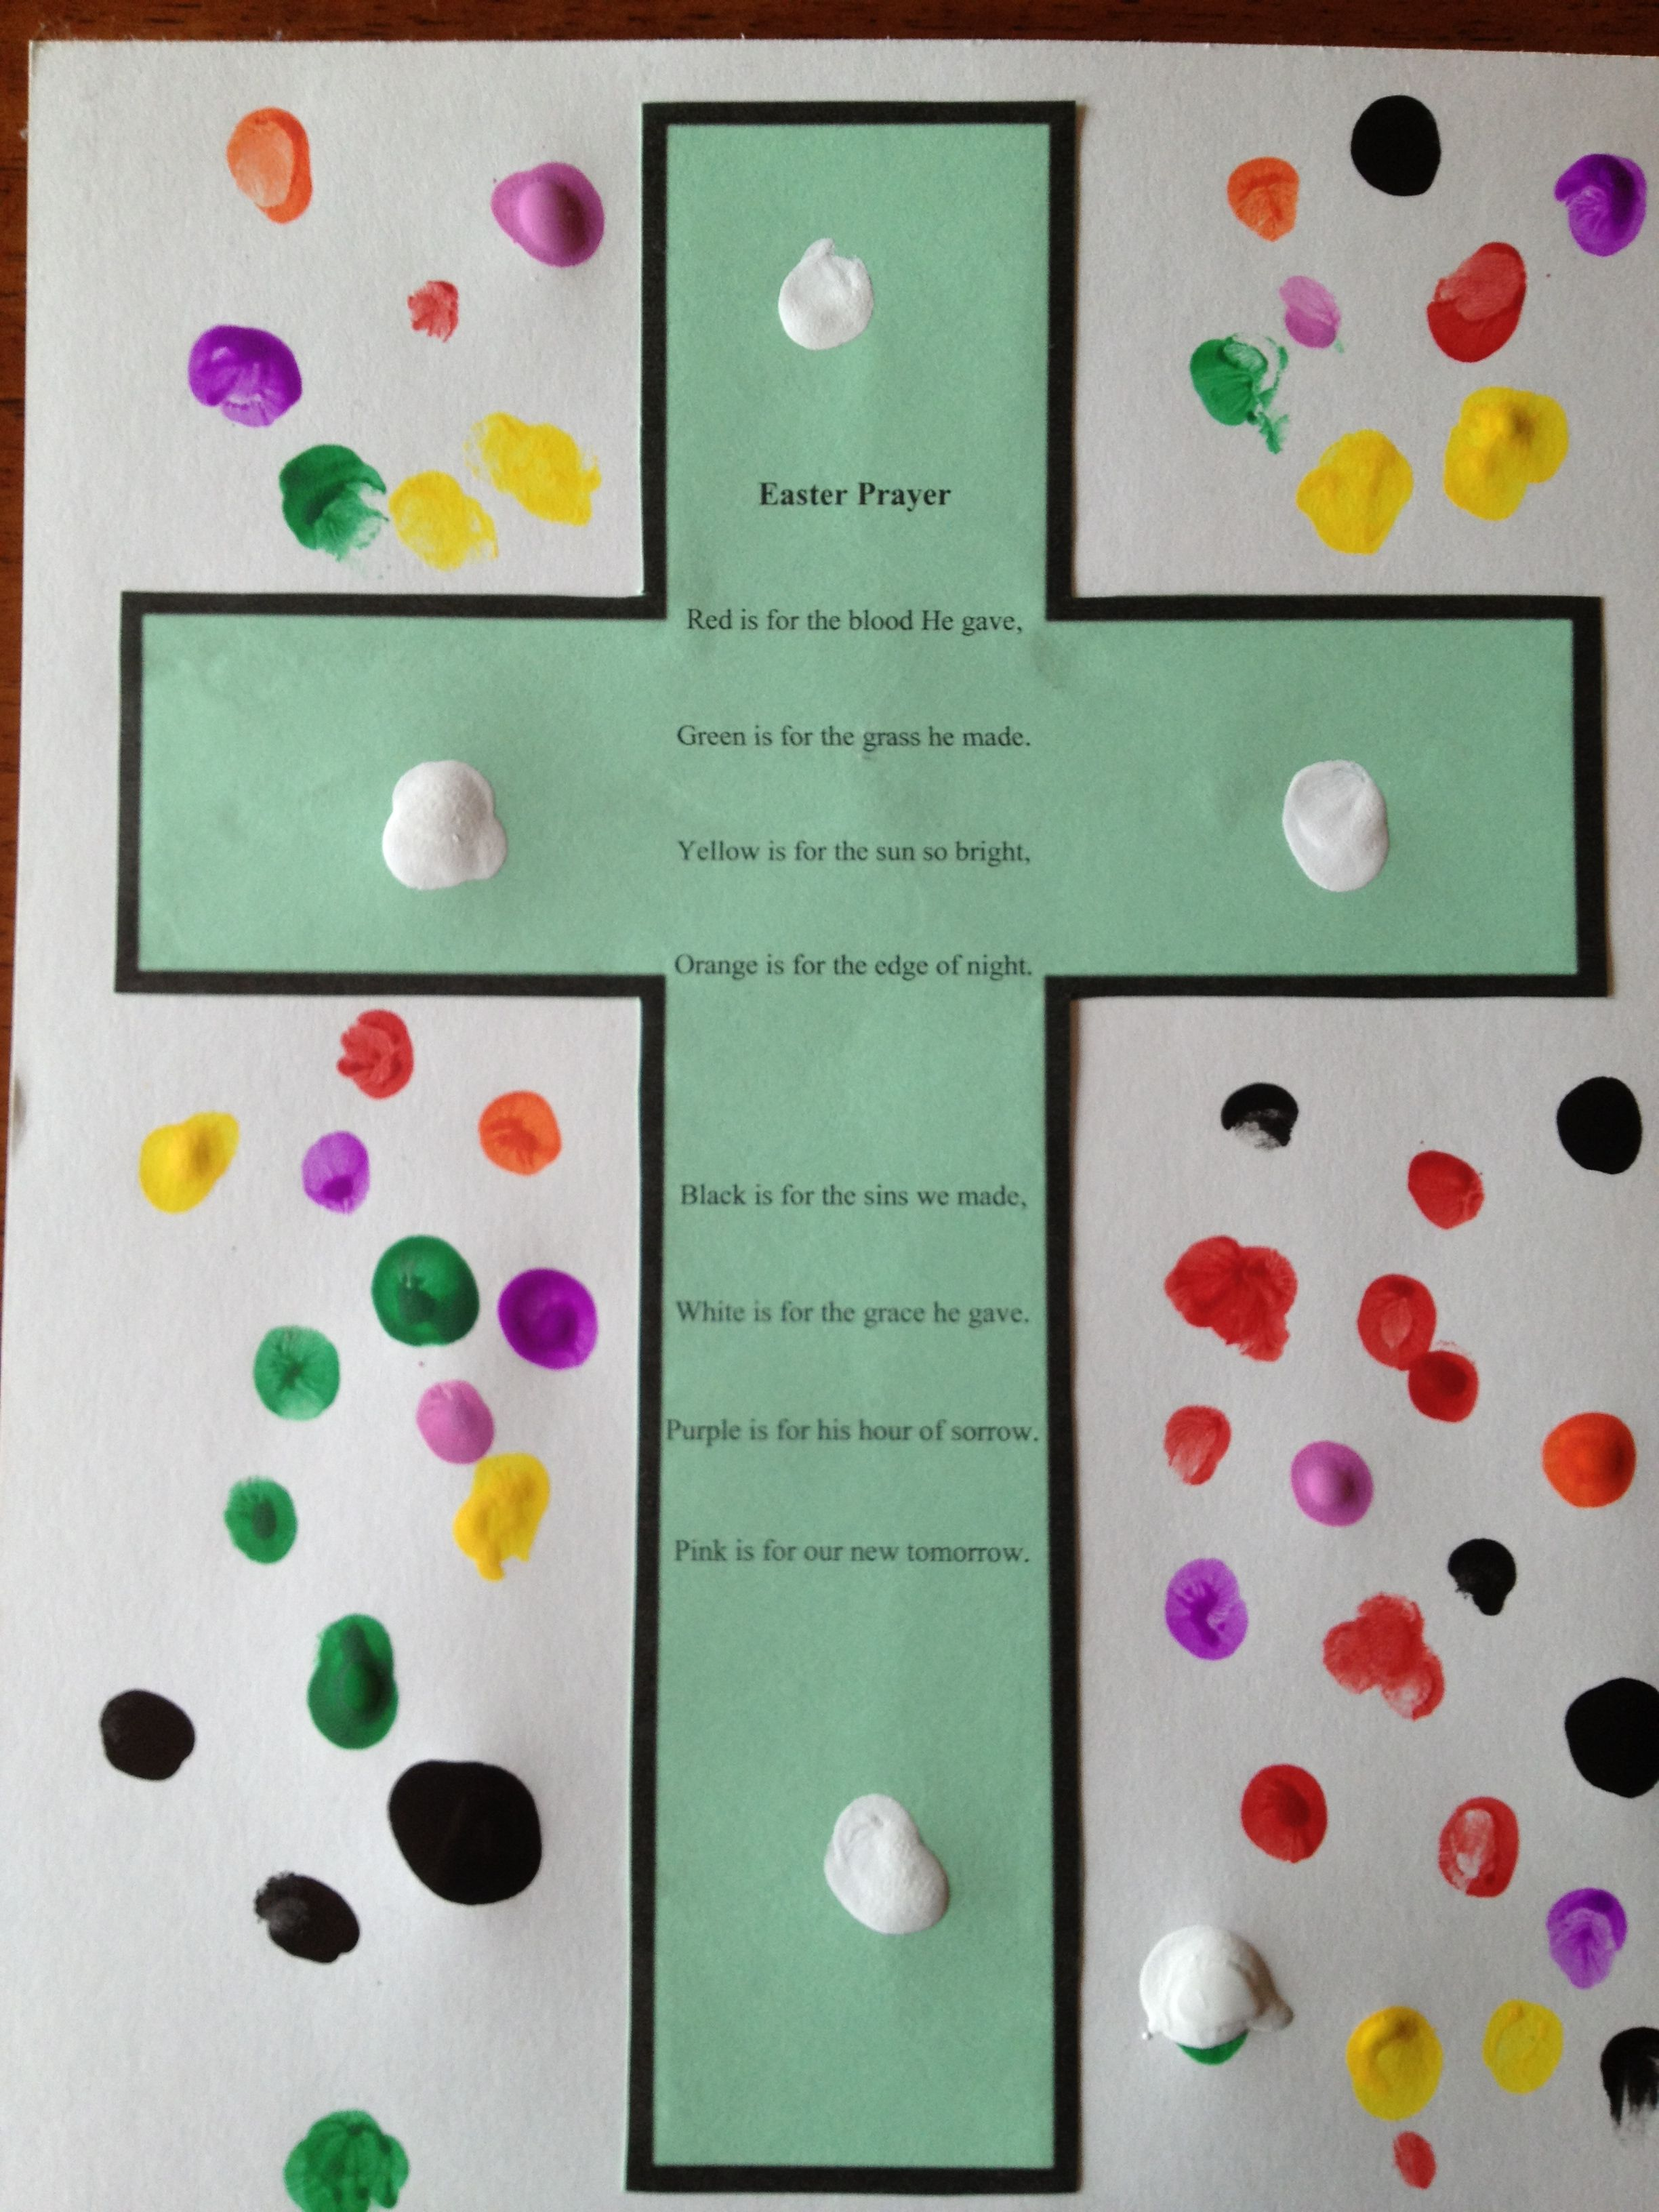 Jelly Bean Prayer Revised For Toddlers And Preschoolers Was Great Finger Painting Fun With The